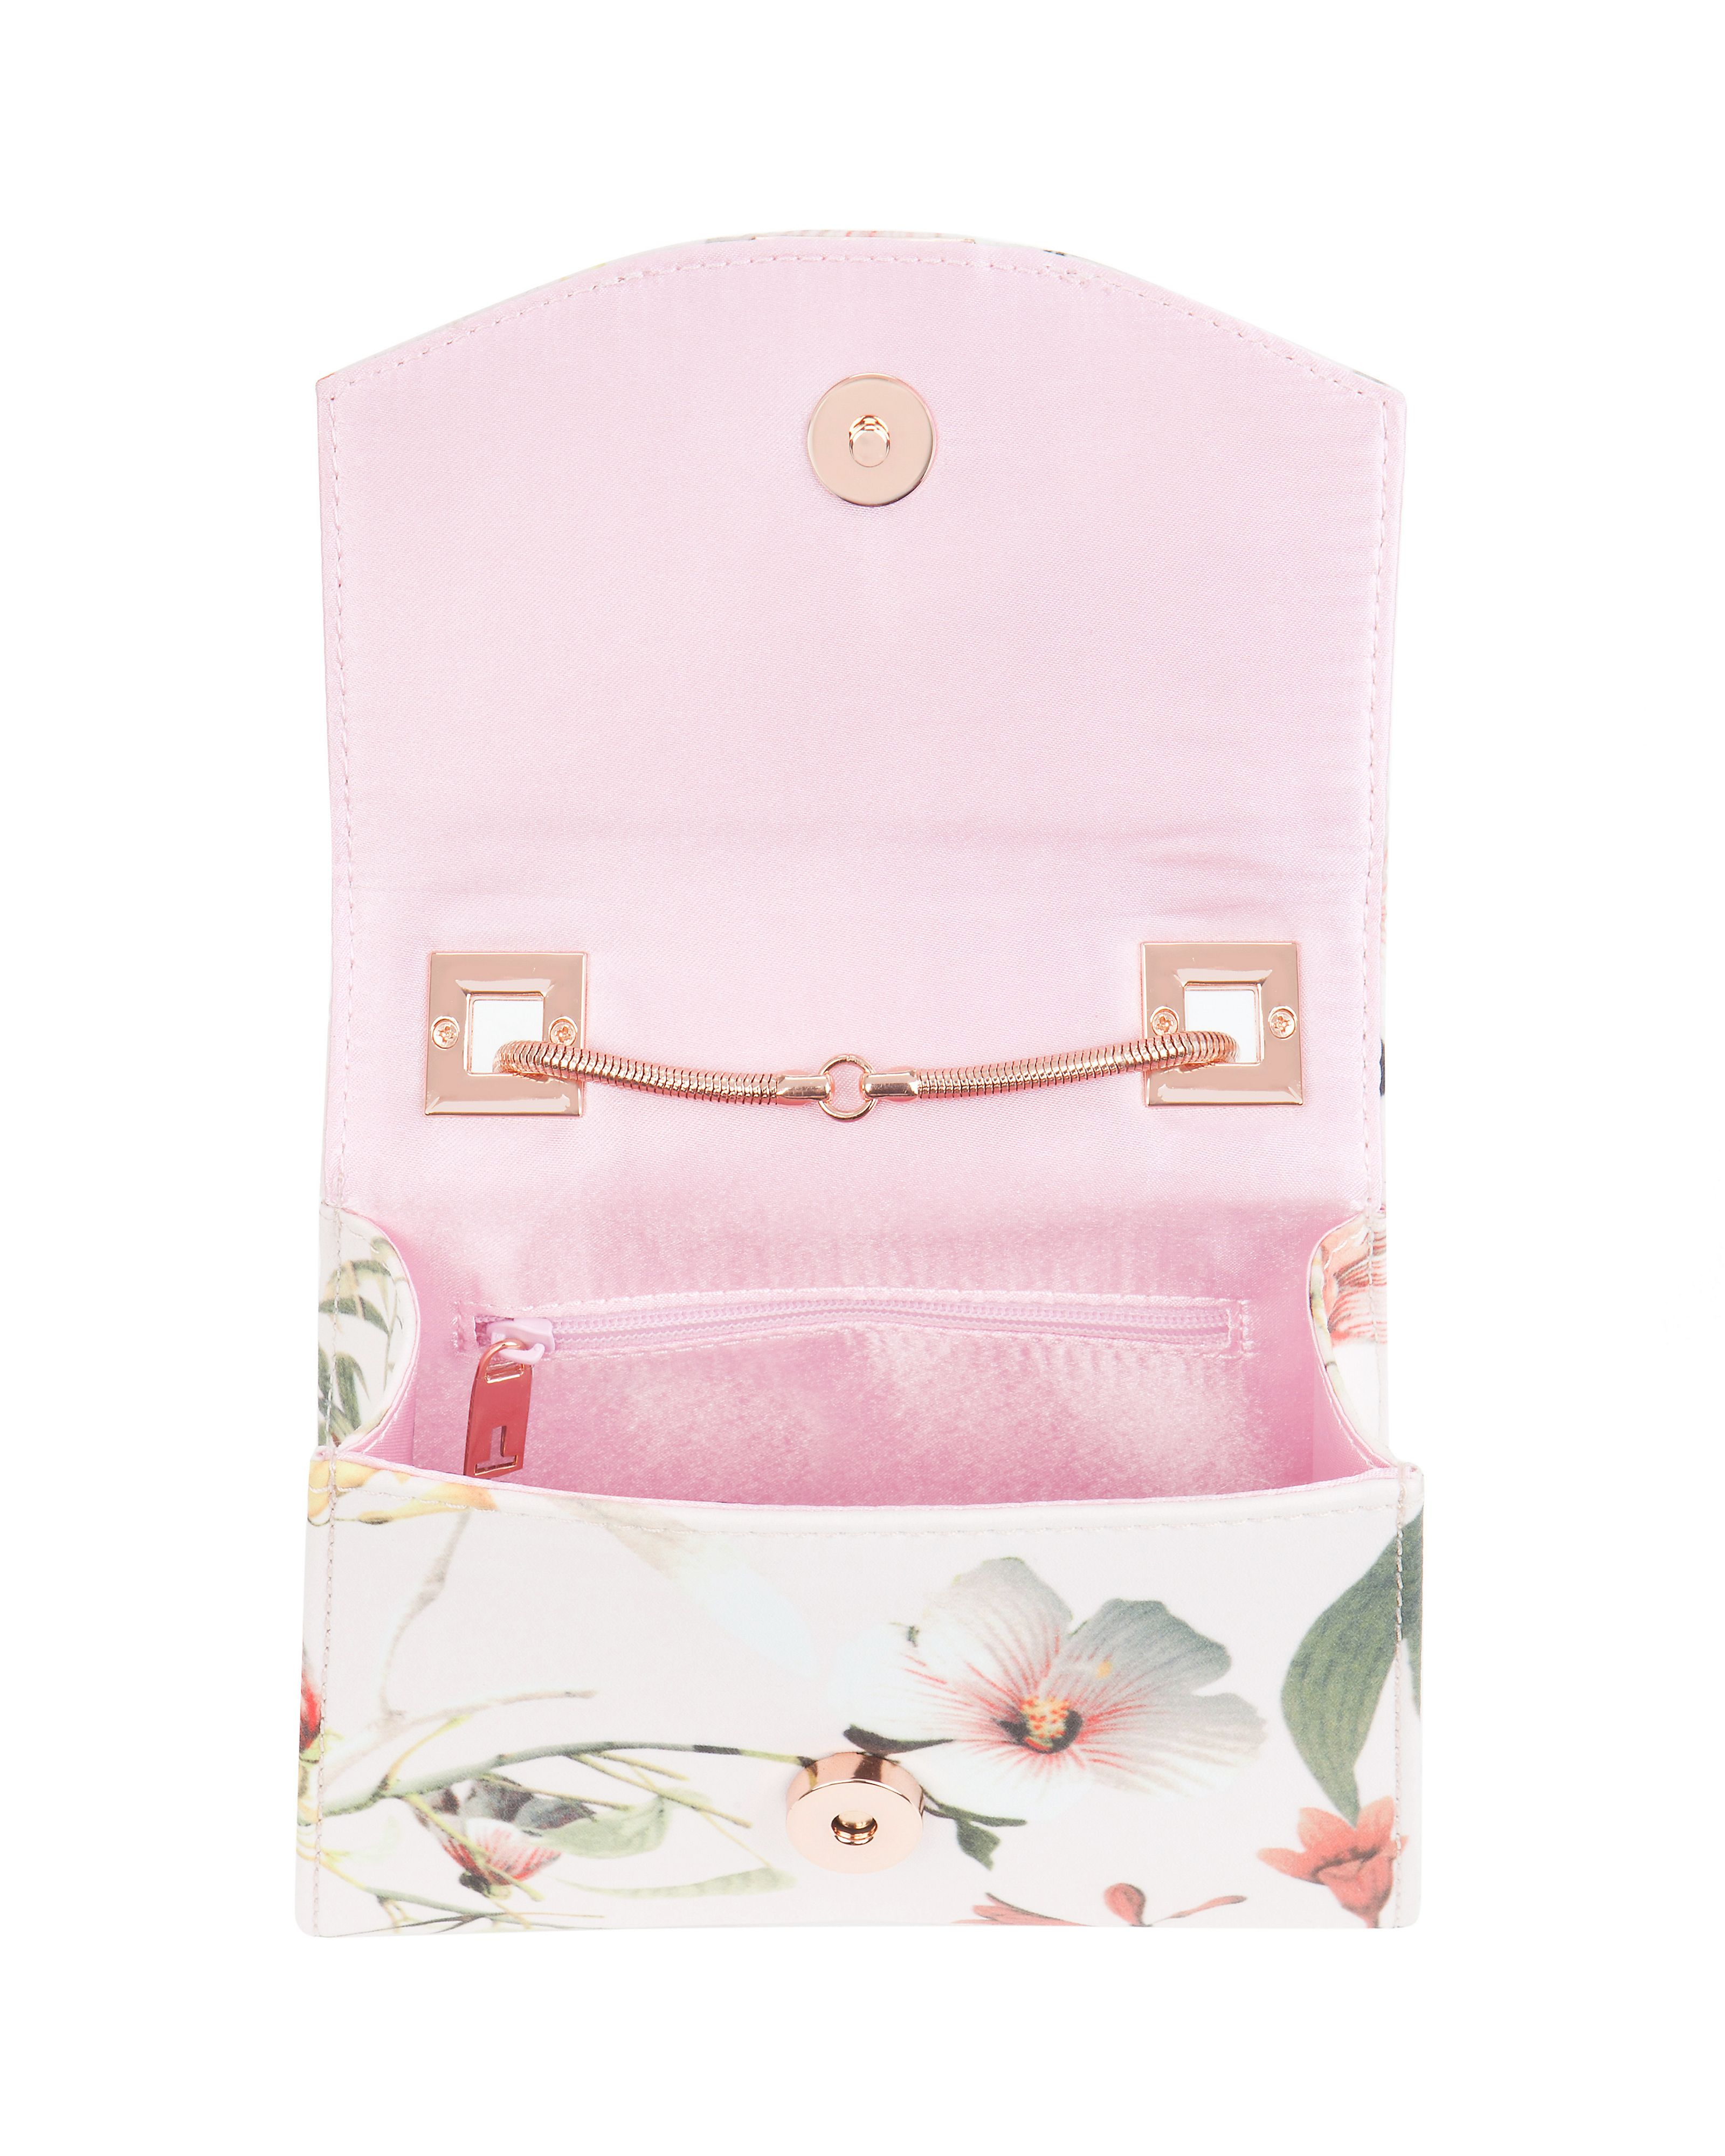 Trudie botanical bloom clutch